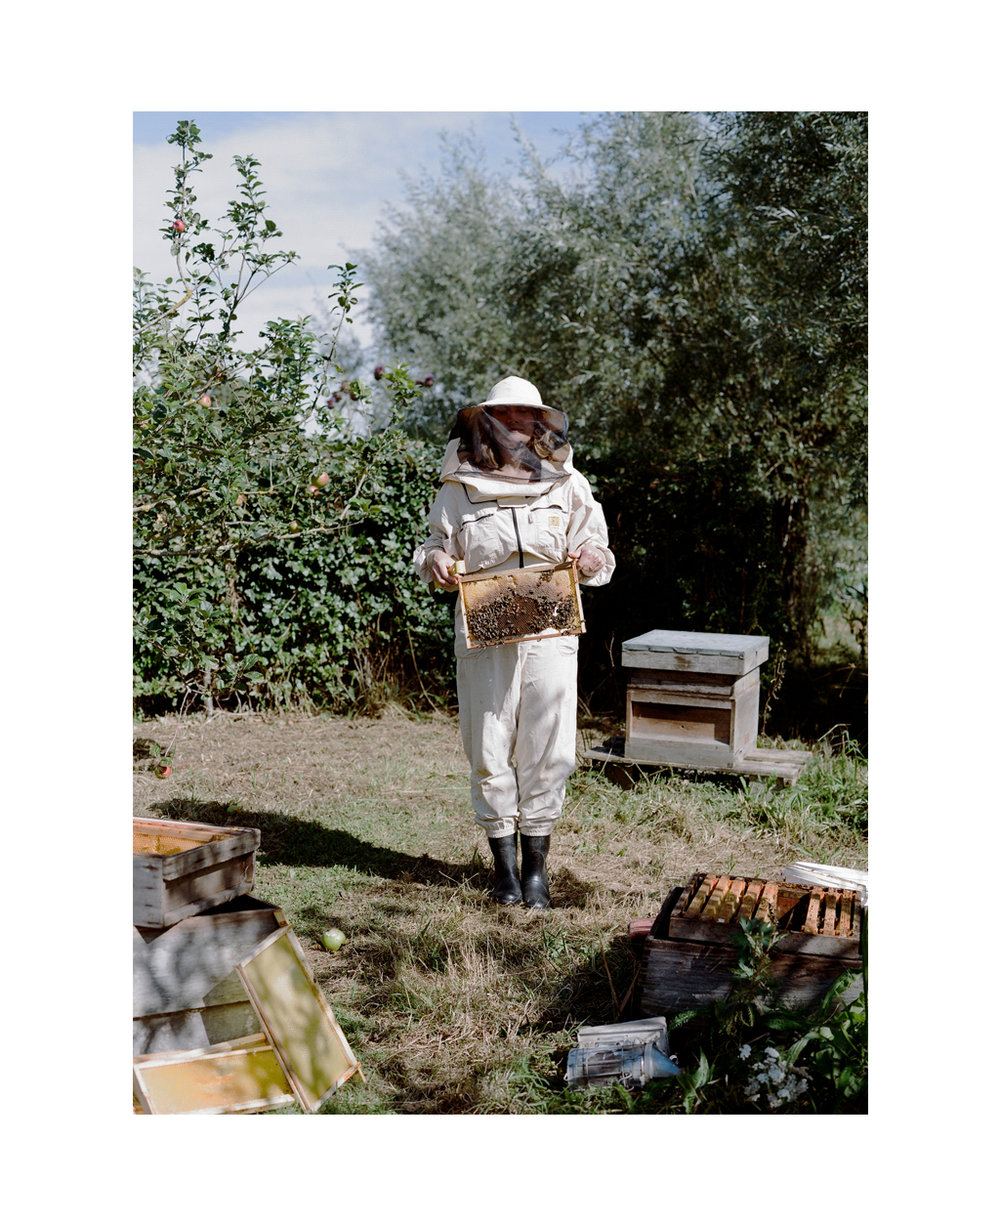 Beekeeper, Cotswolds, UK.